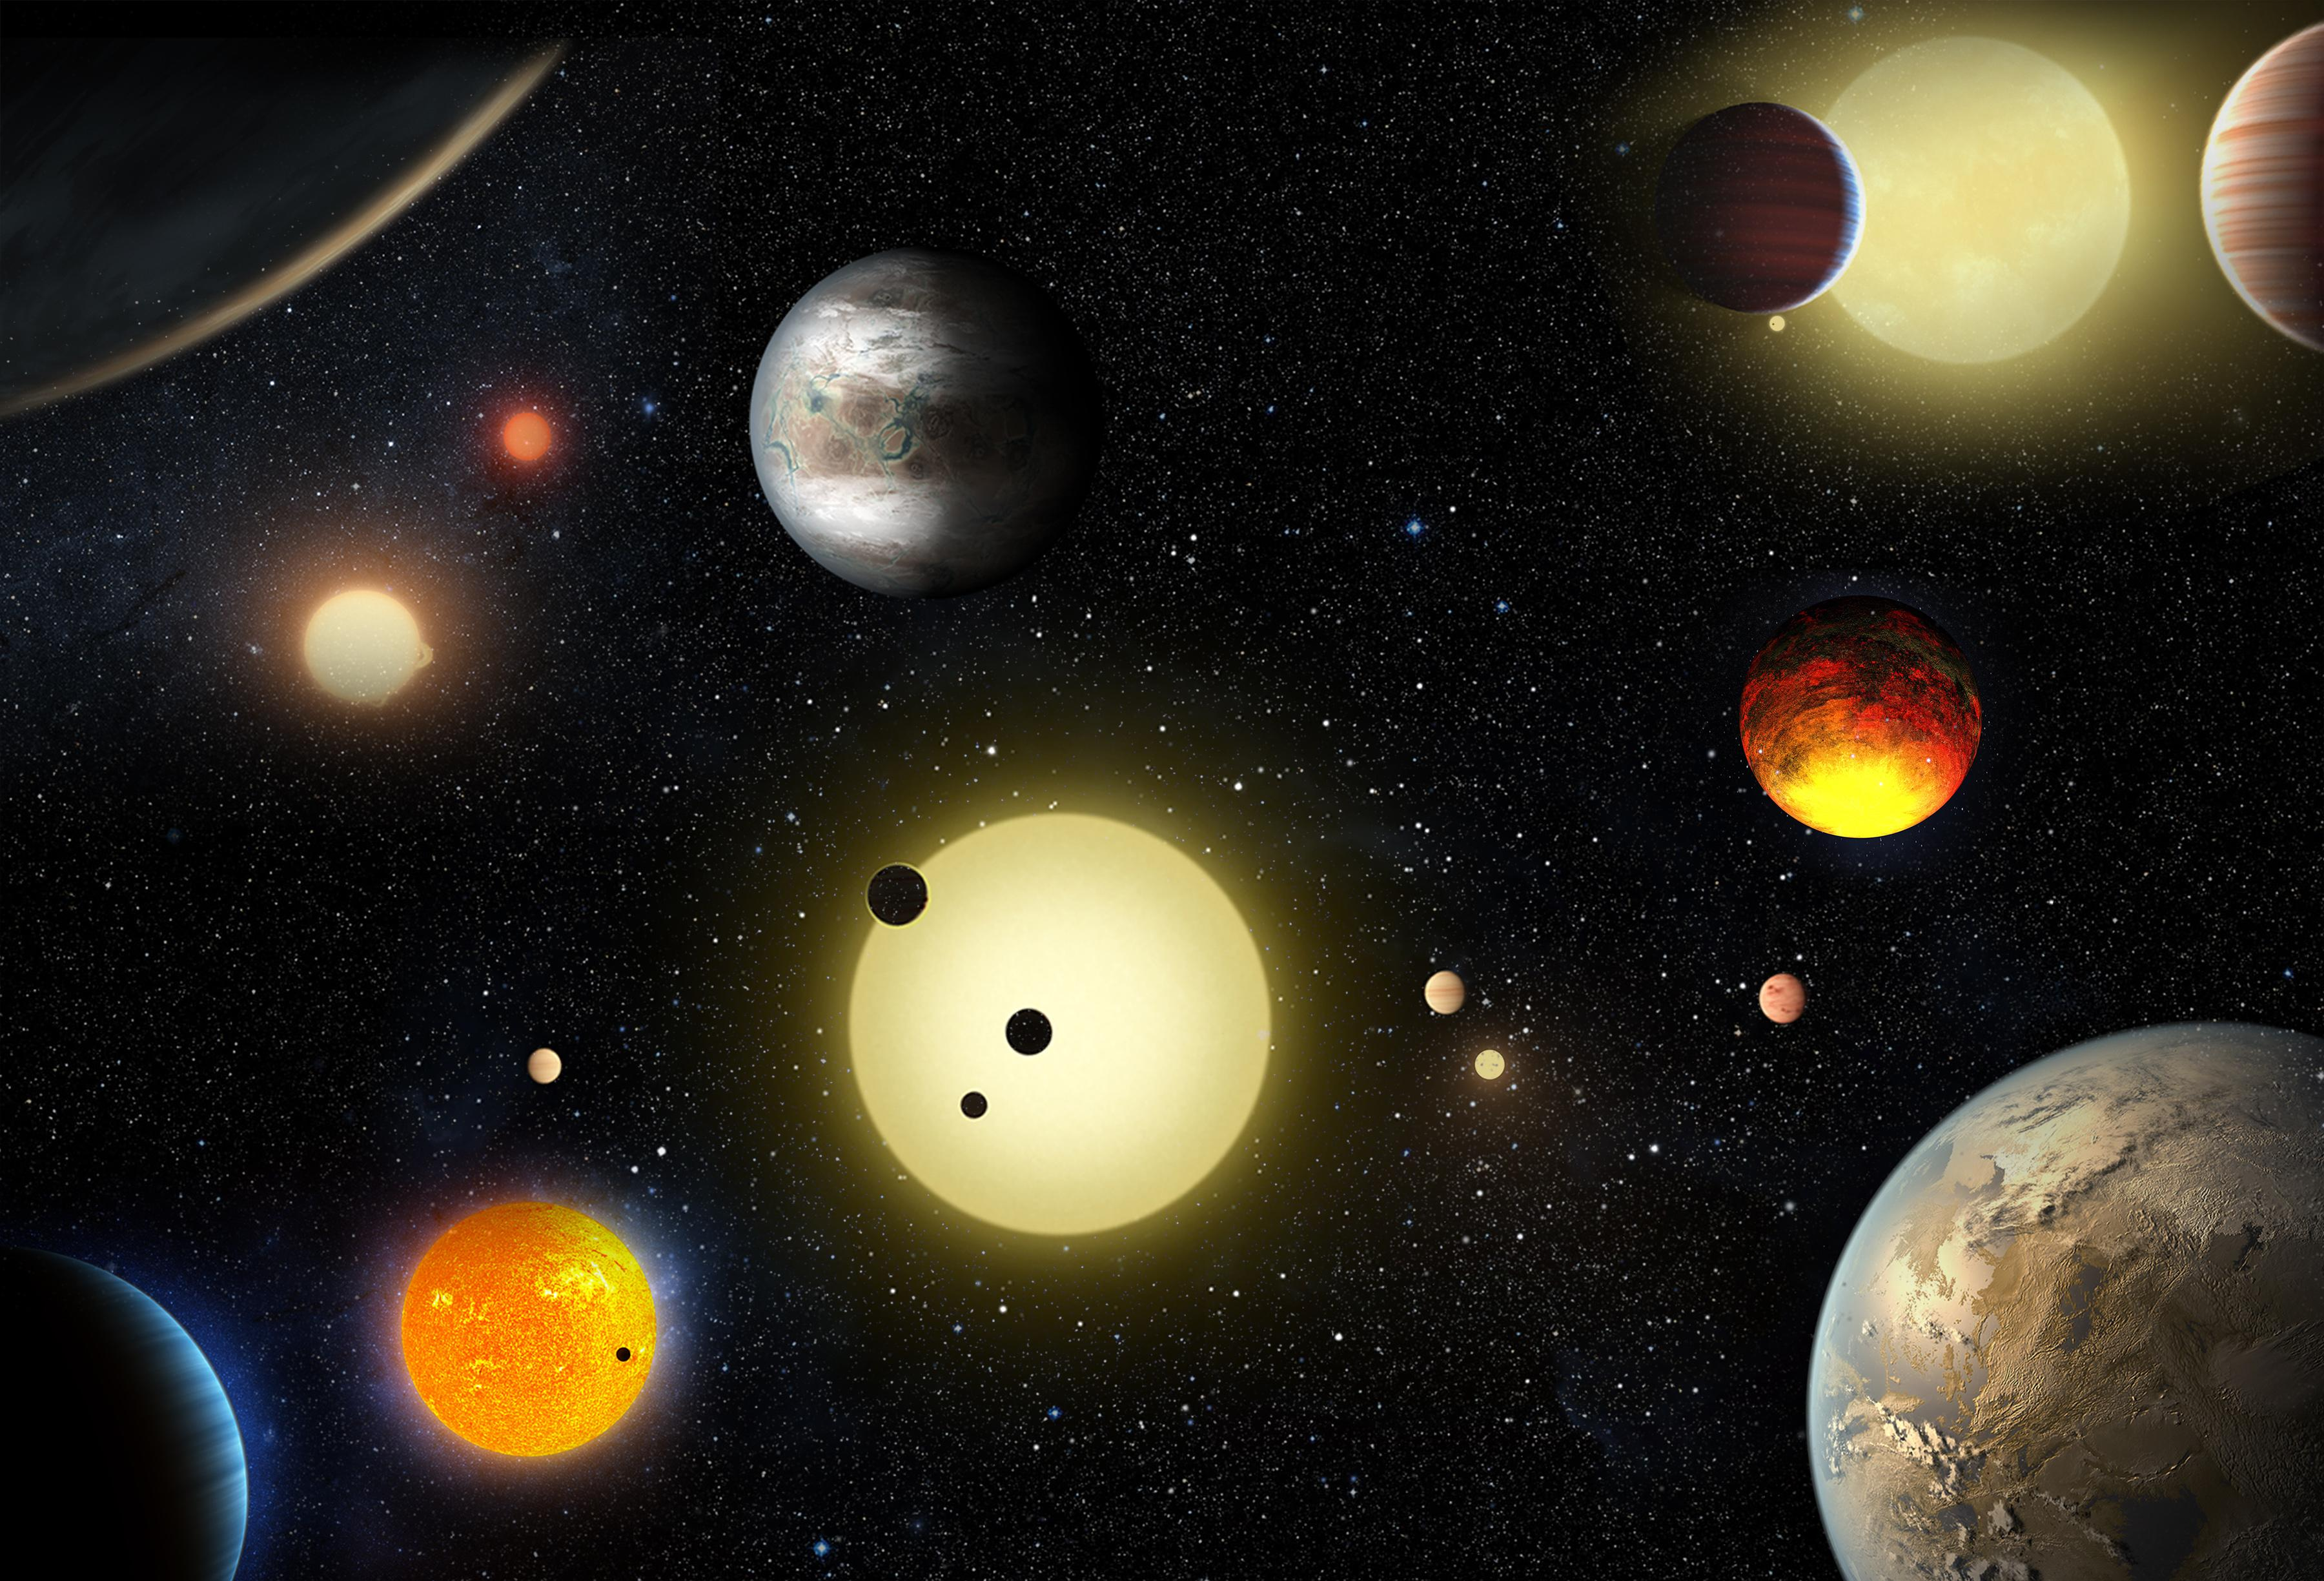 universe solar system images - HD1278×870